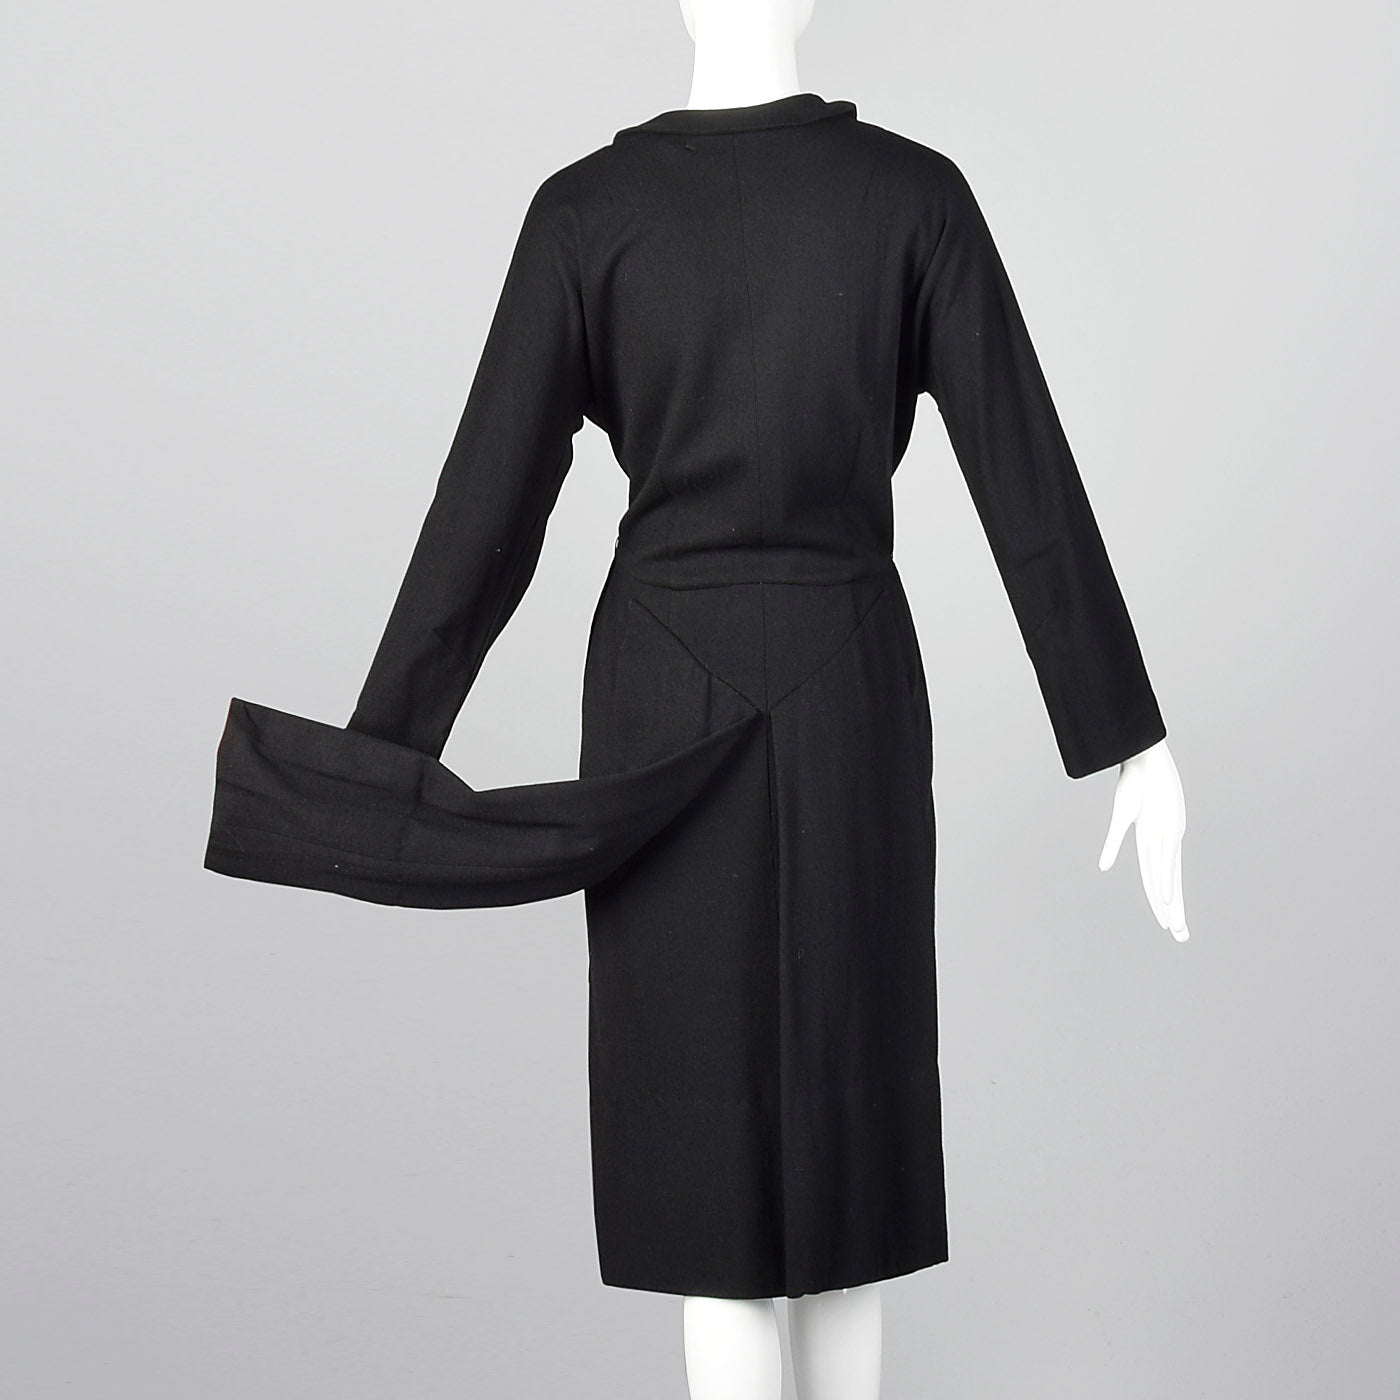 1940s Black Knit Dress with Tails